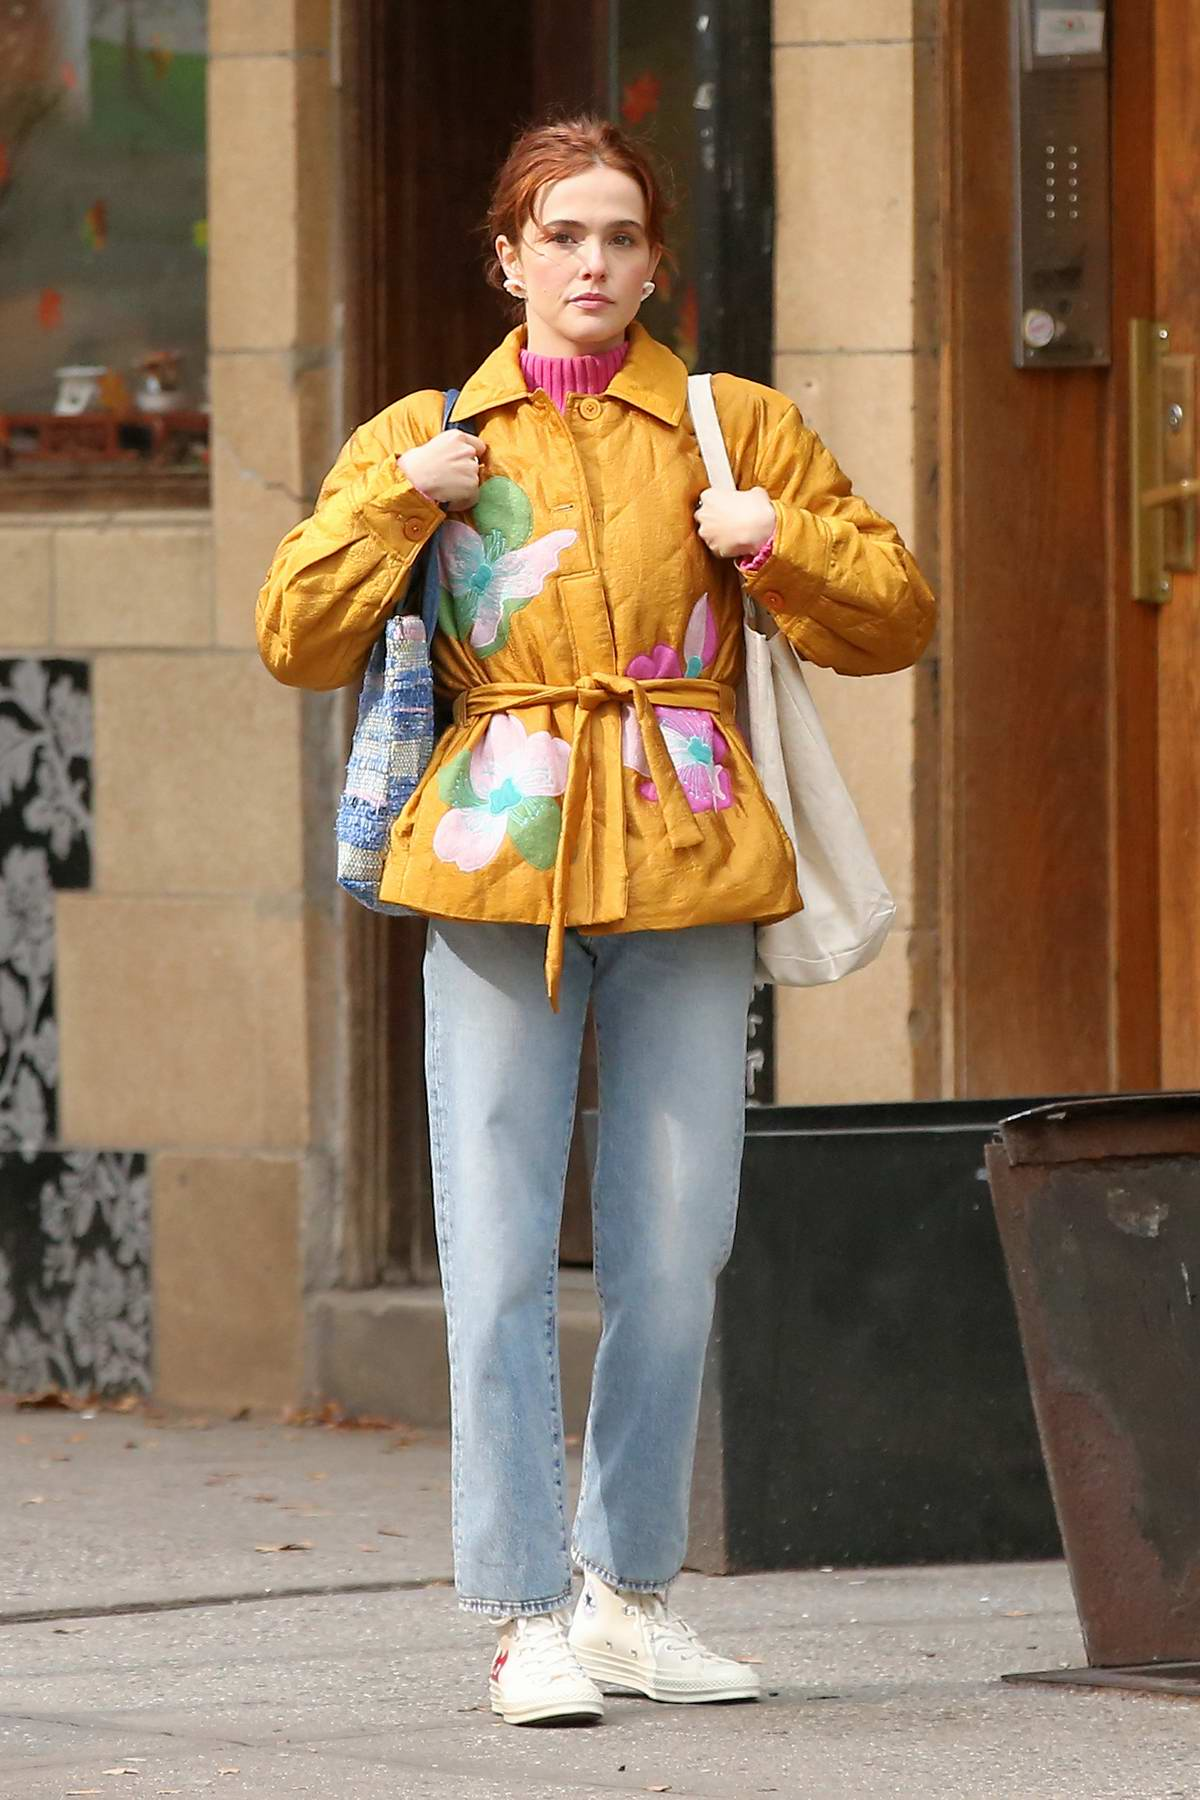 Zoey Deutch looks pretty in a yellow jacket as she leaves a coffee shop in New York City